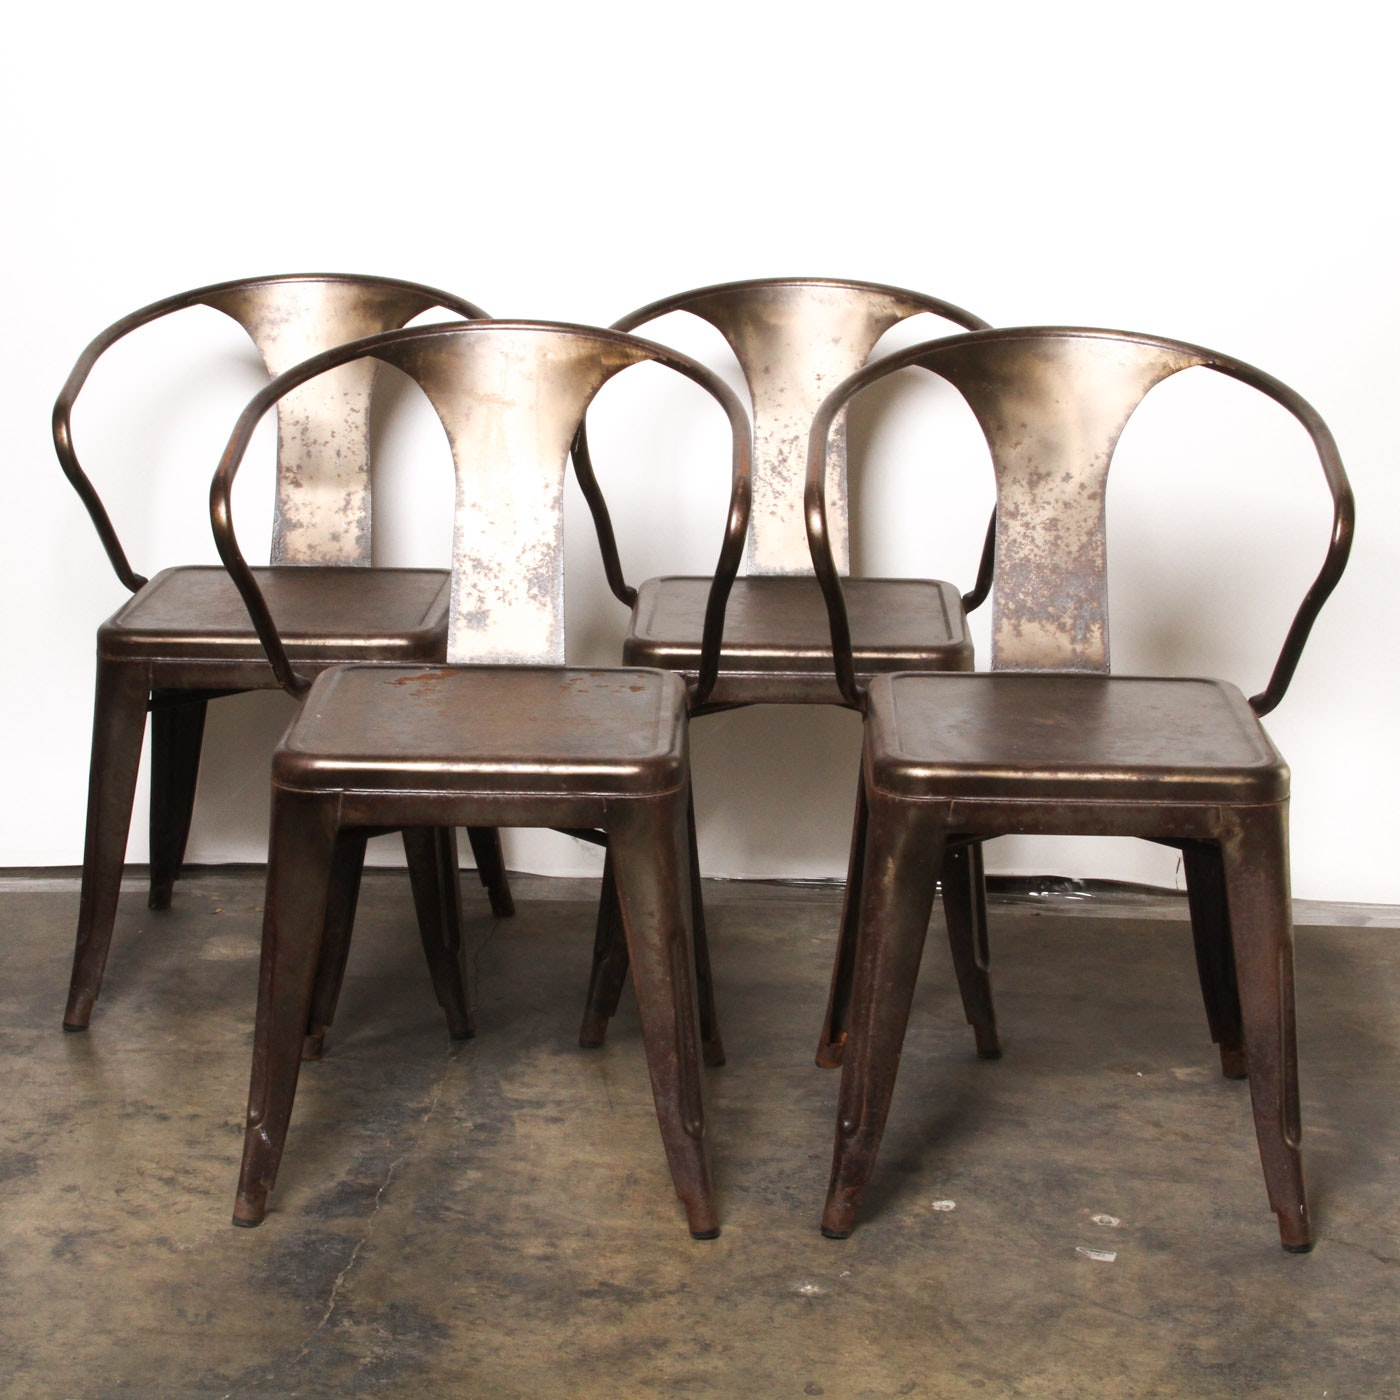 Set of Industrial Style Dining Chairs